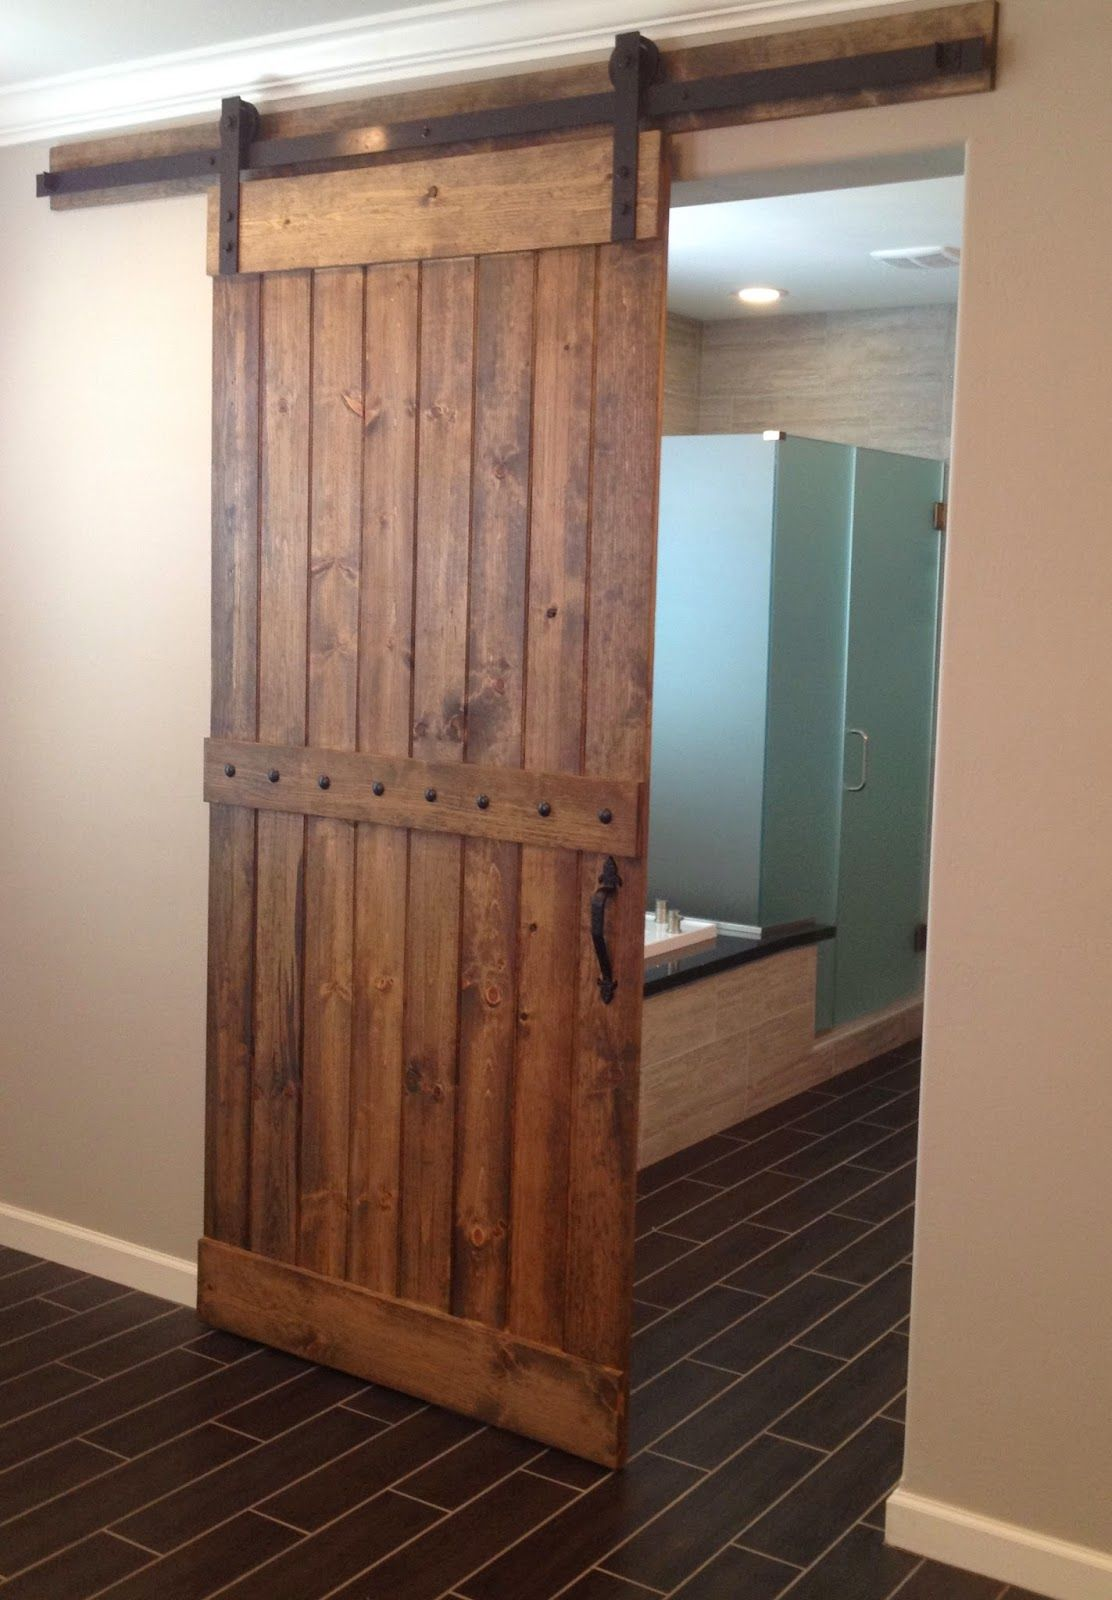 ARIZONA BARN DOORS: A Sampling of our Barn Doors